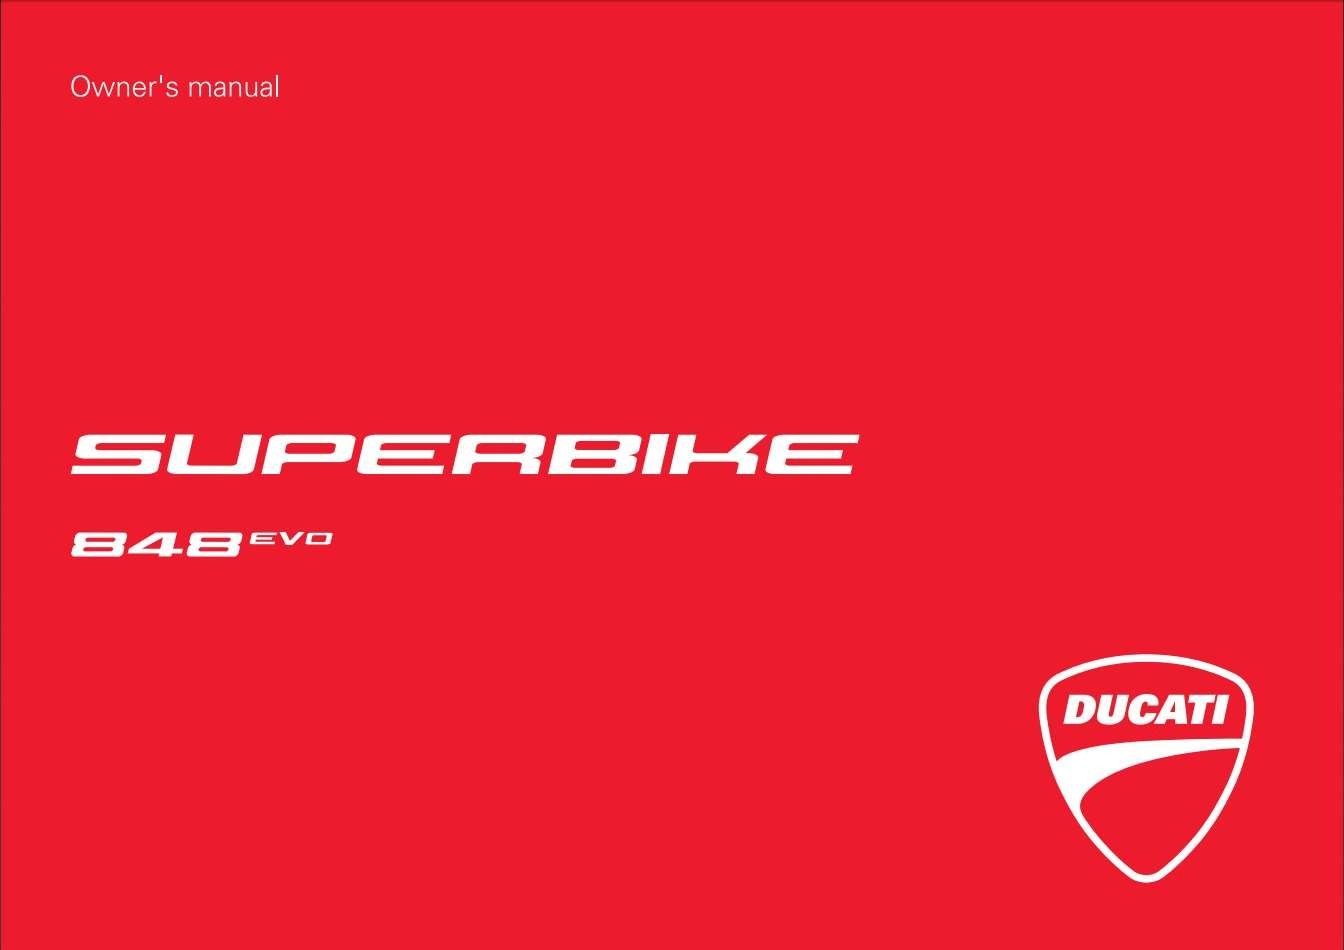 Ducati Sbk 848 Evo Usa My13 2012 Owner S Manual Has Been Published On Procarmanuals Com Https Procarmanuals Com Ducati Sbk 848 E In 2020 Owners Manuals Ducati Manual